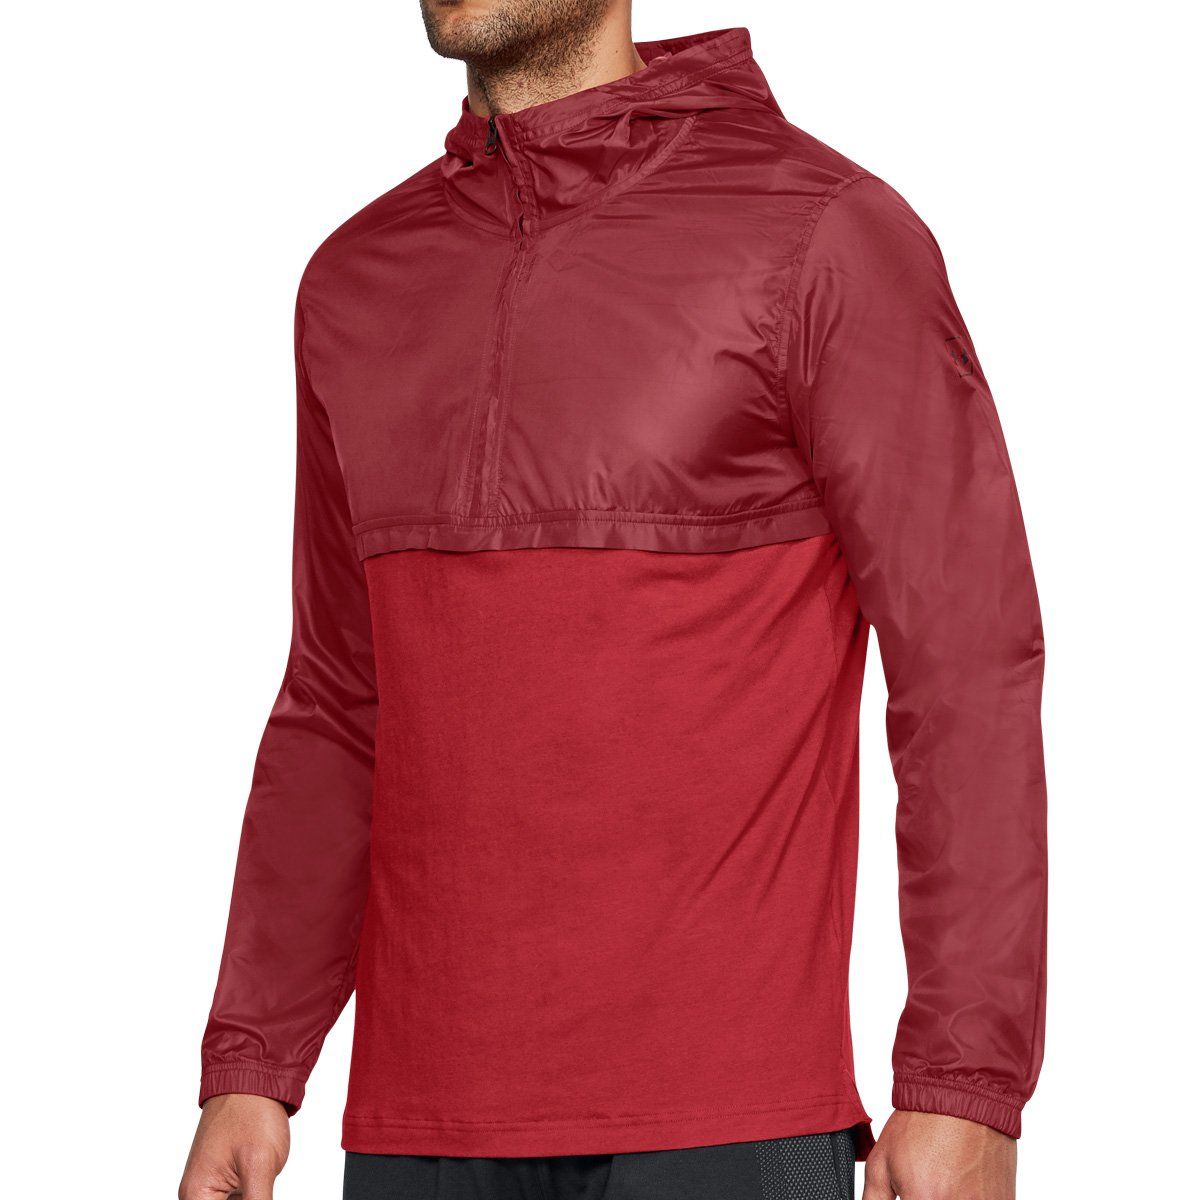 Under Armour Men's Sportstyle Wind Anorak, Red (600)/Black, Small